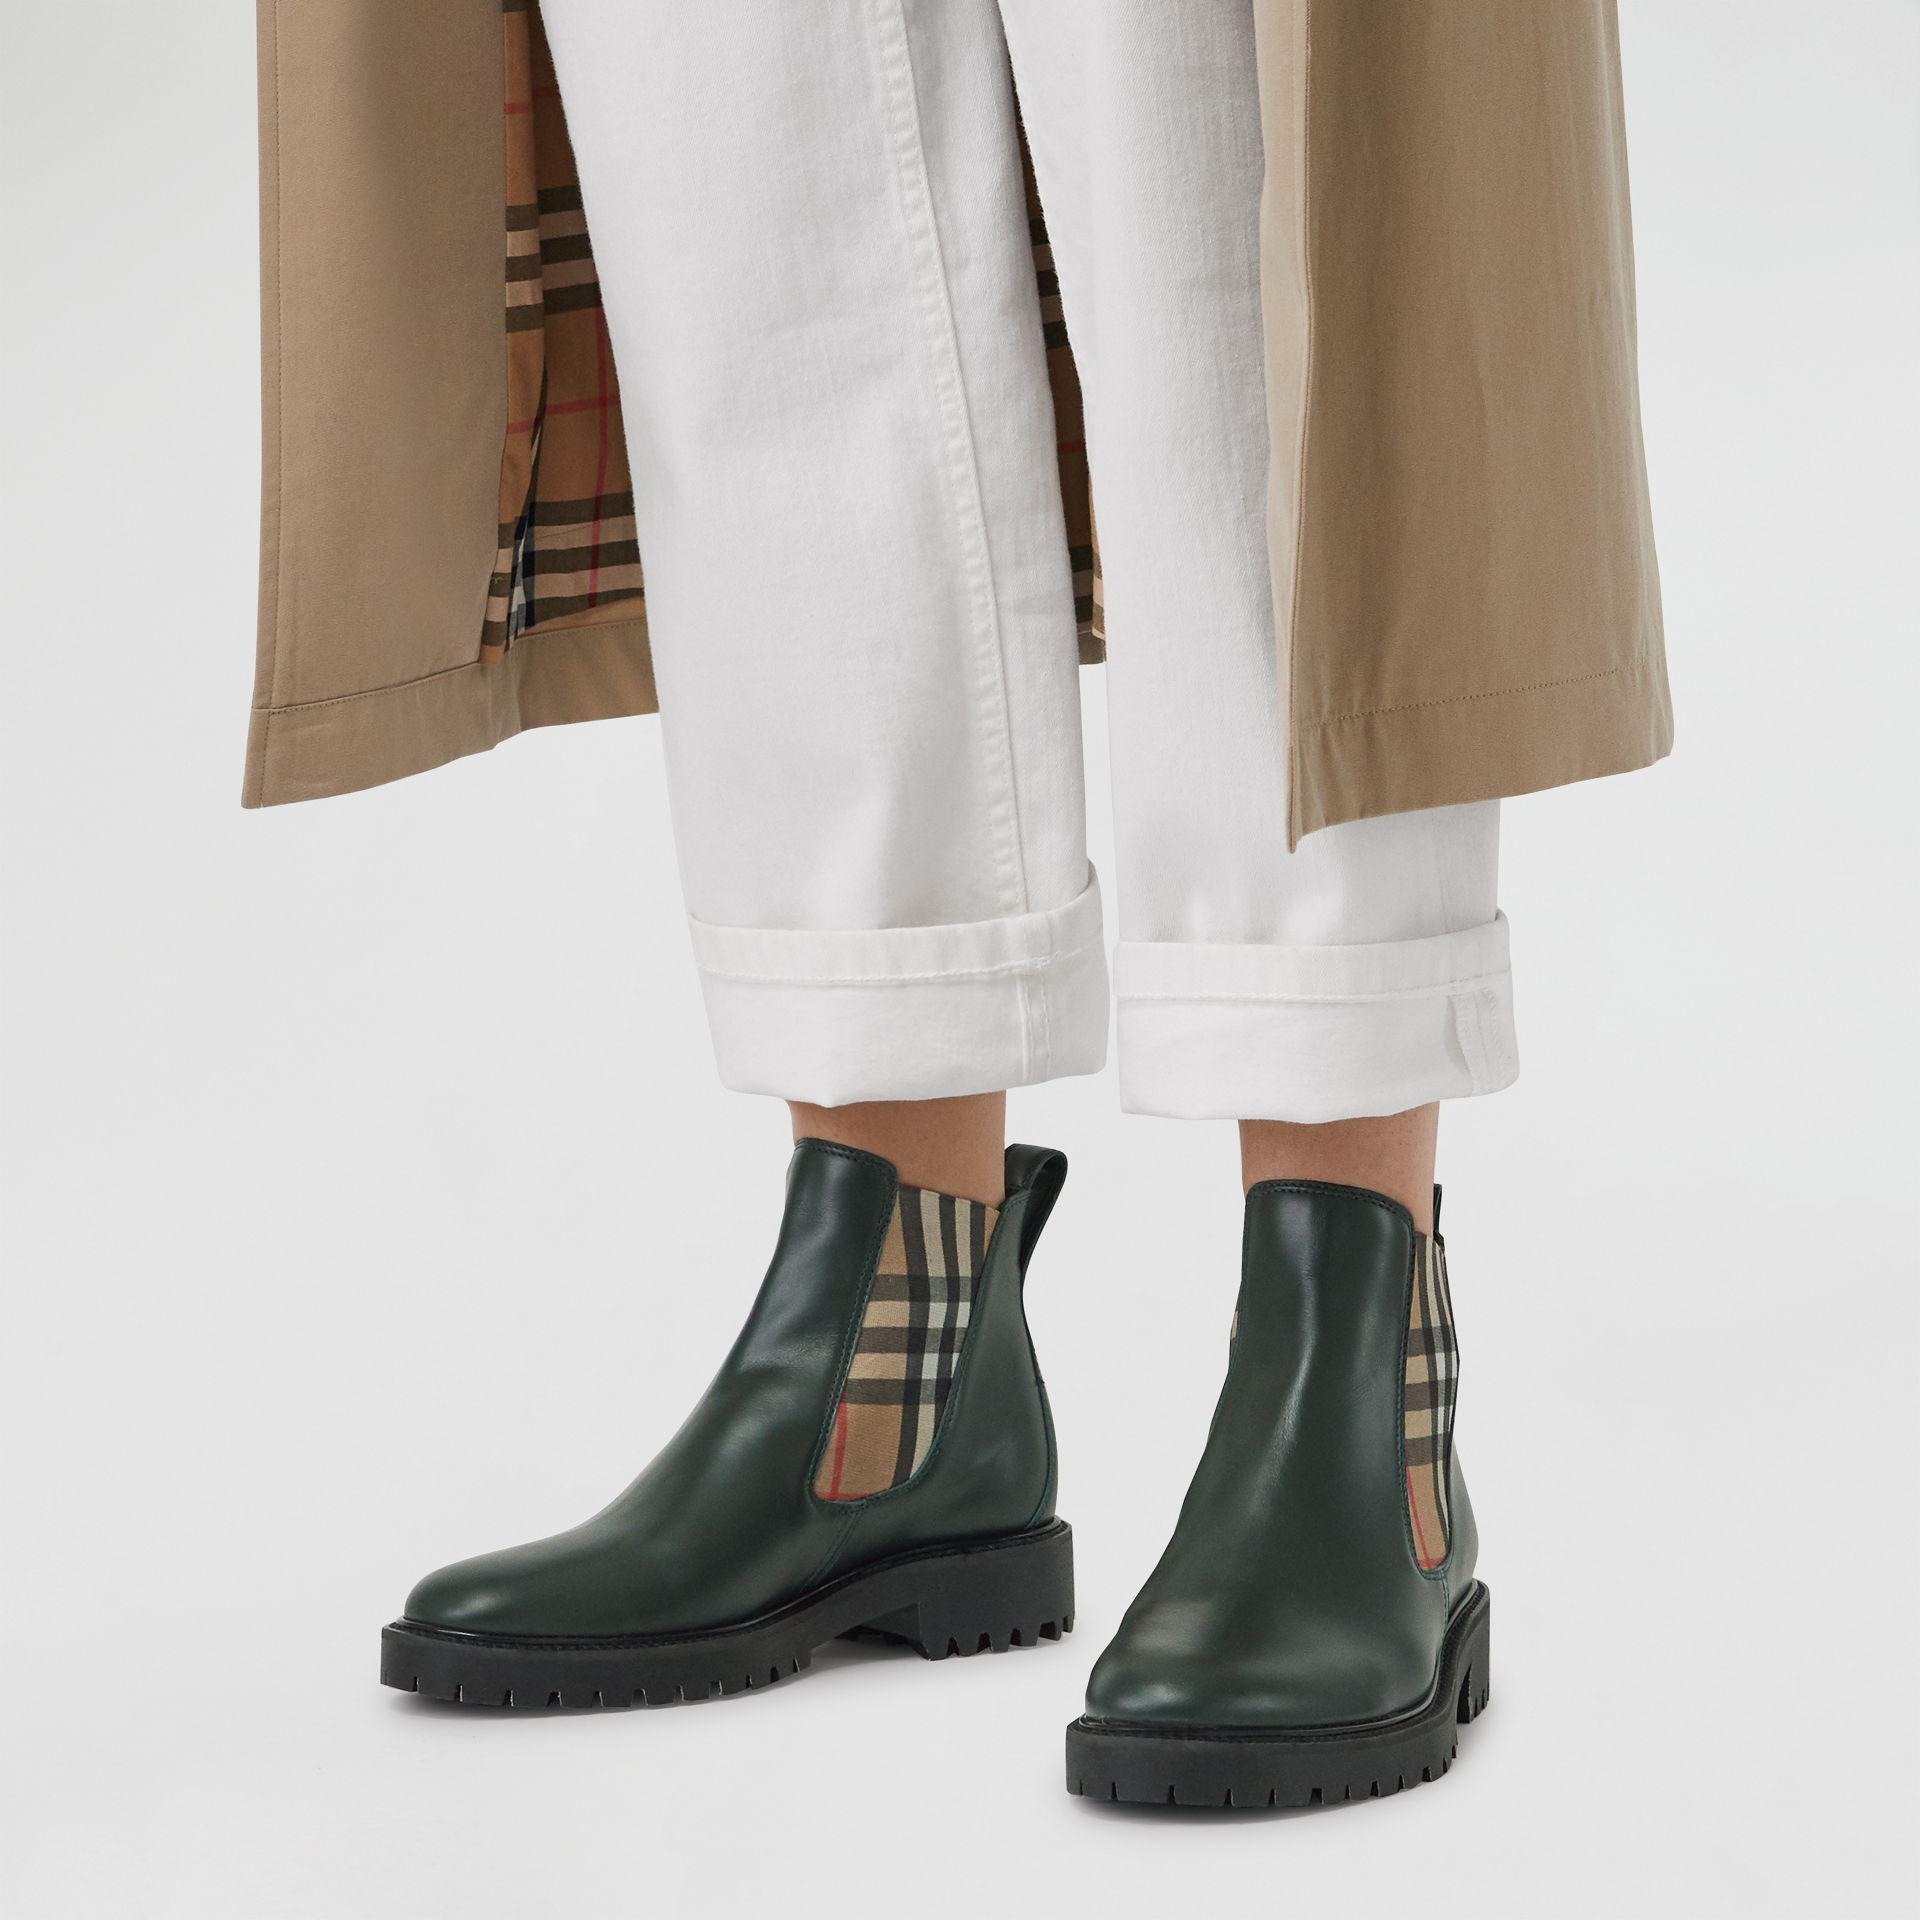 21fd139770d0 Lyst - Burberry Vintage Check Detail Leather Chelsea Boots in Green